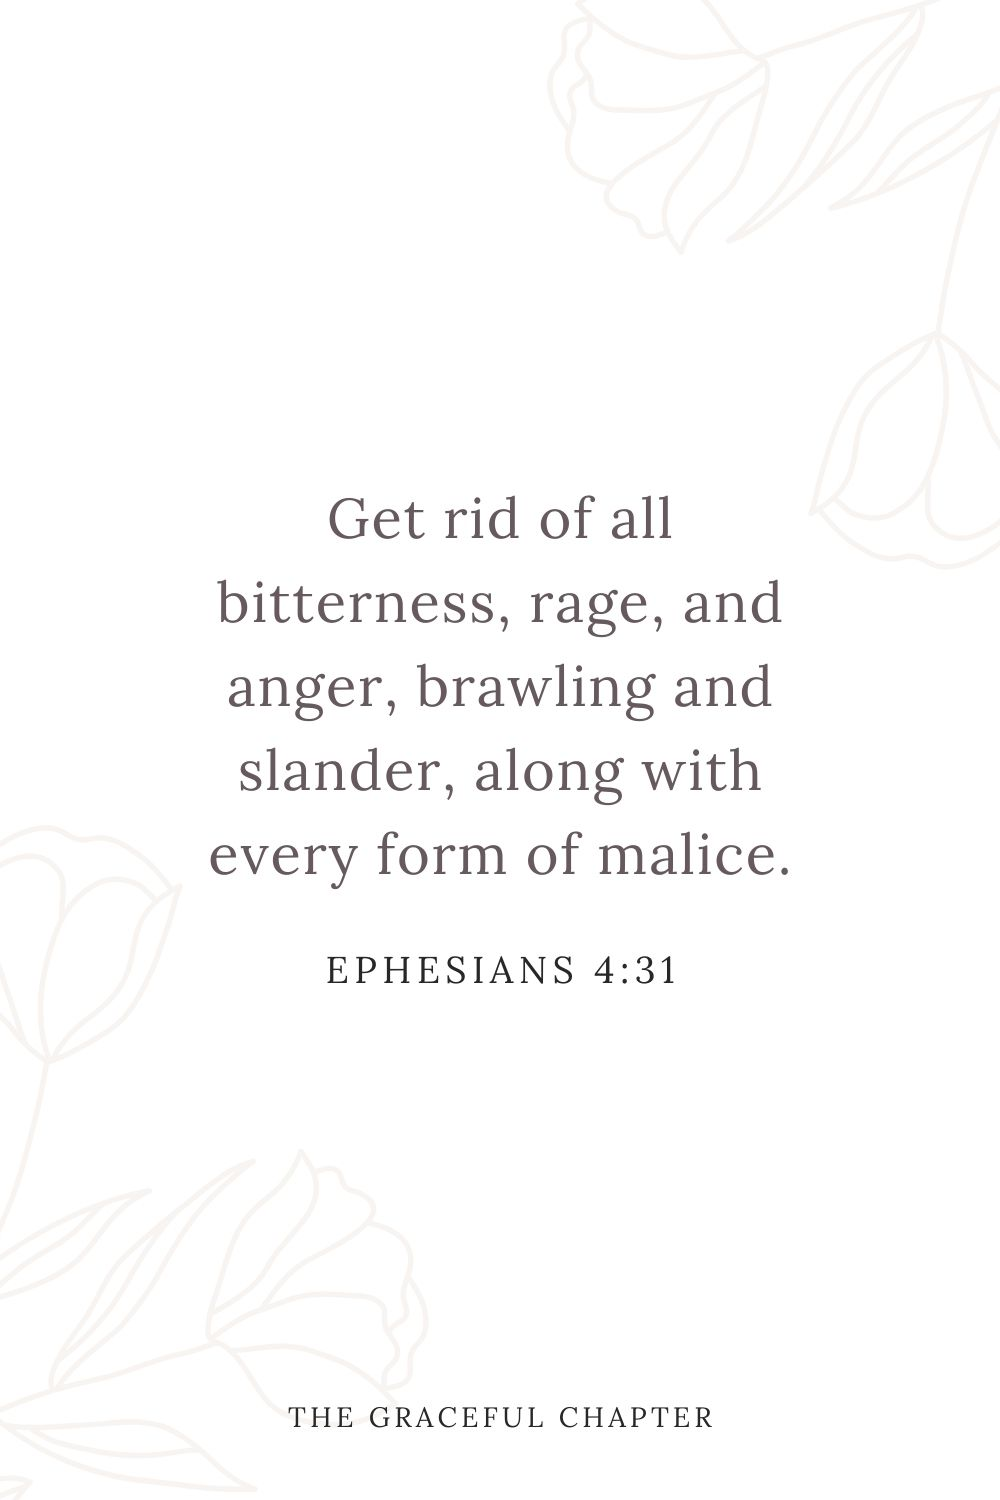 Get rid of all bitterness, rage, and anger, brawling and slander, along with every form of malice. Ephesians 4:31